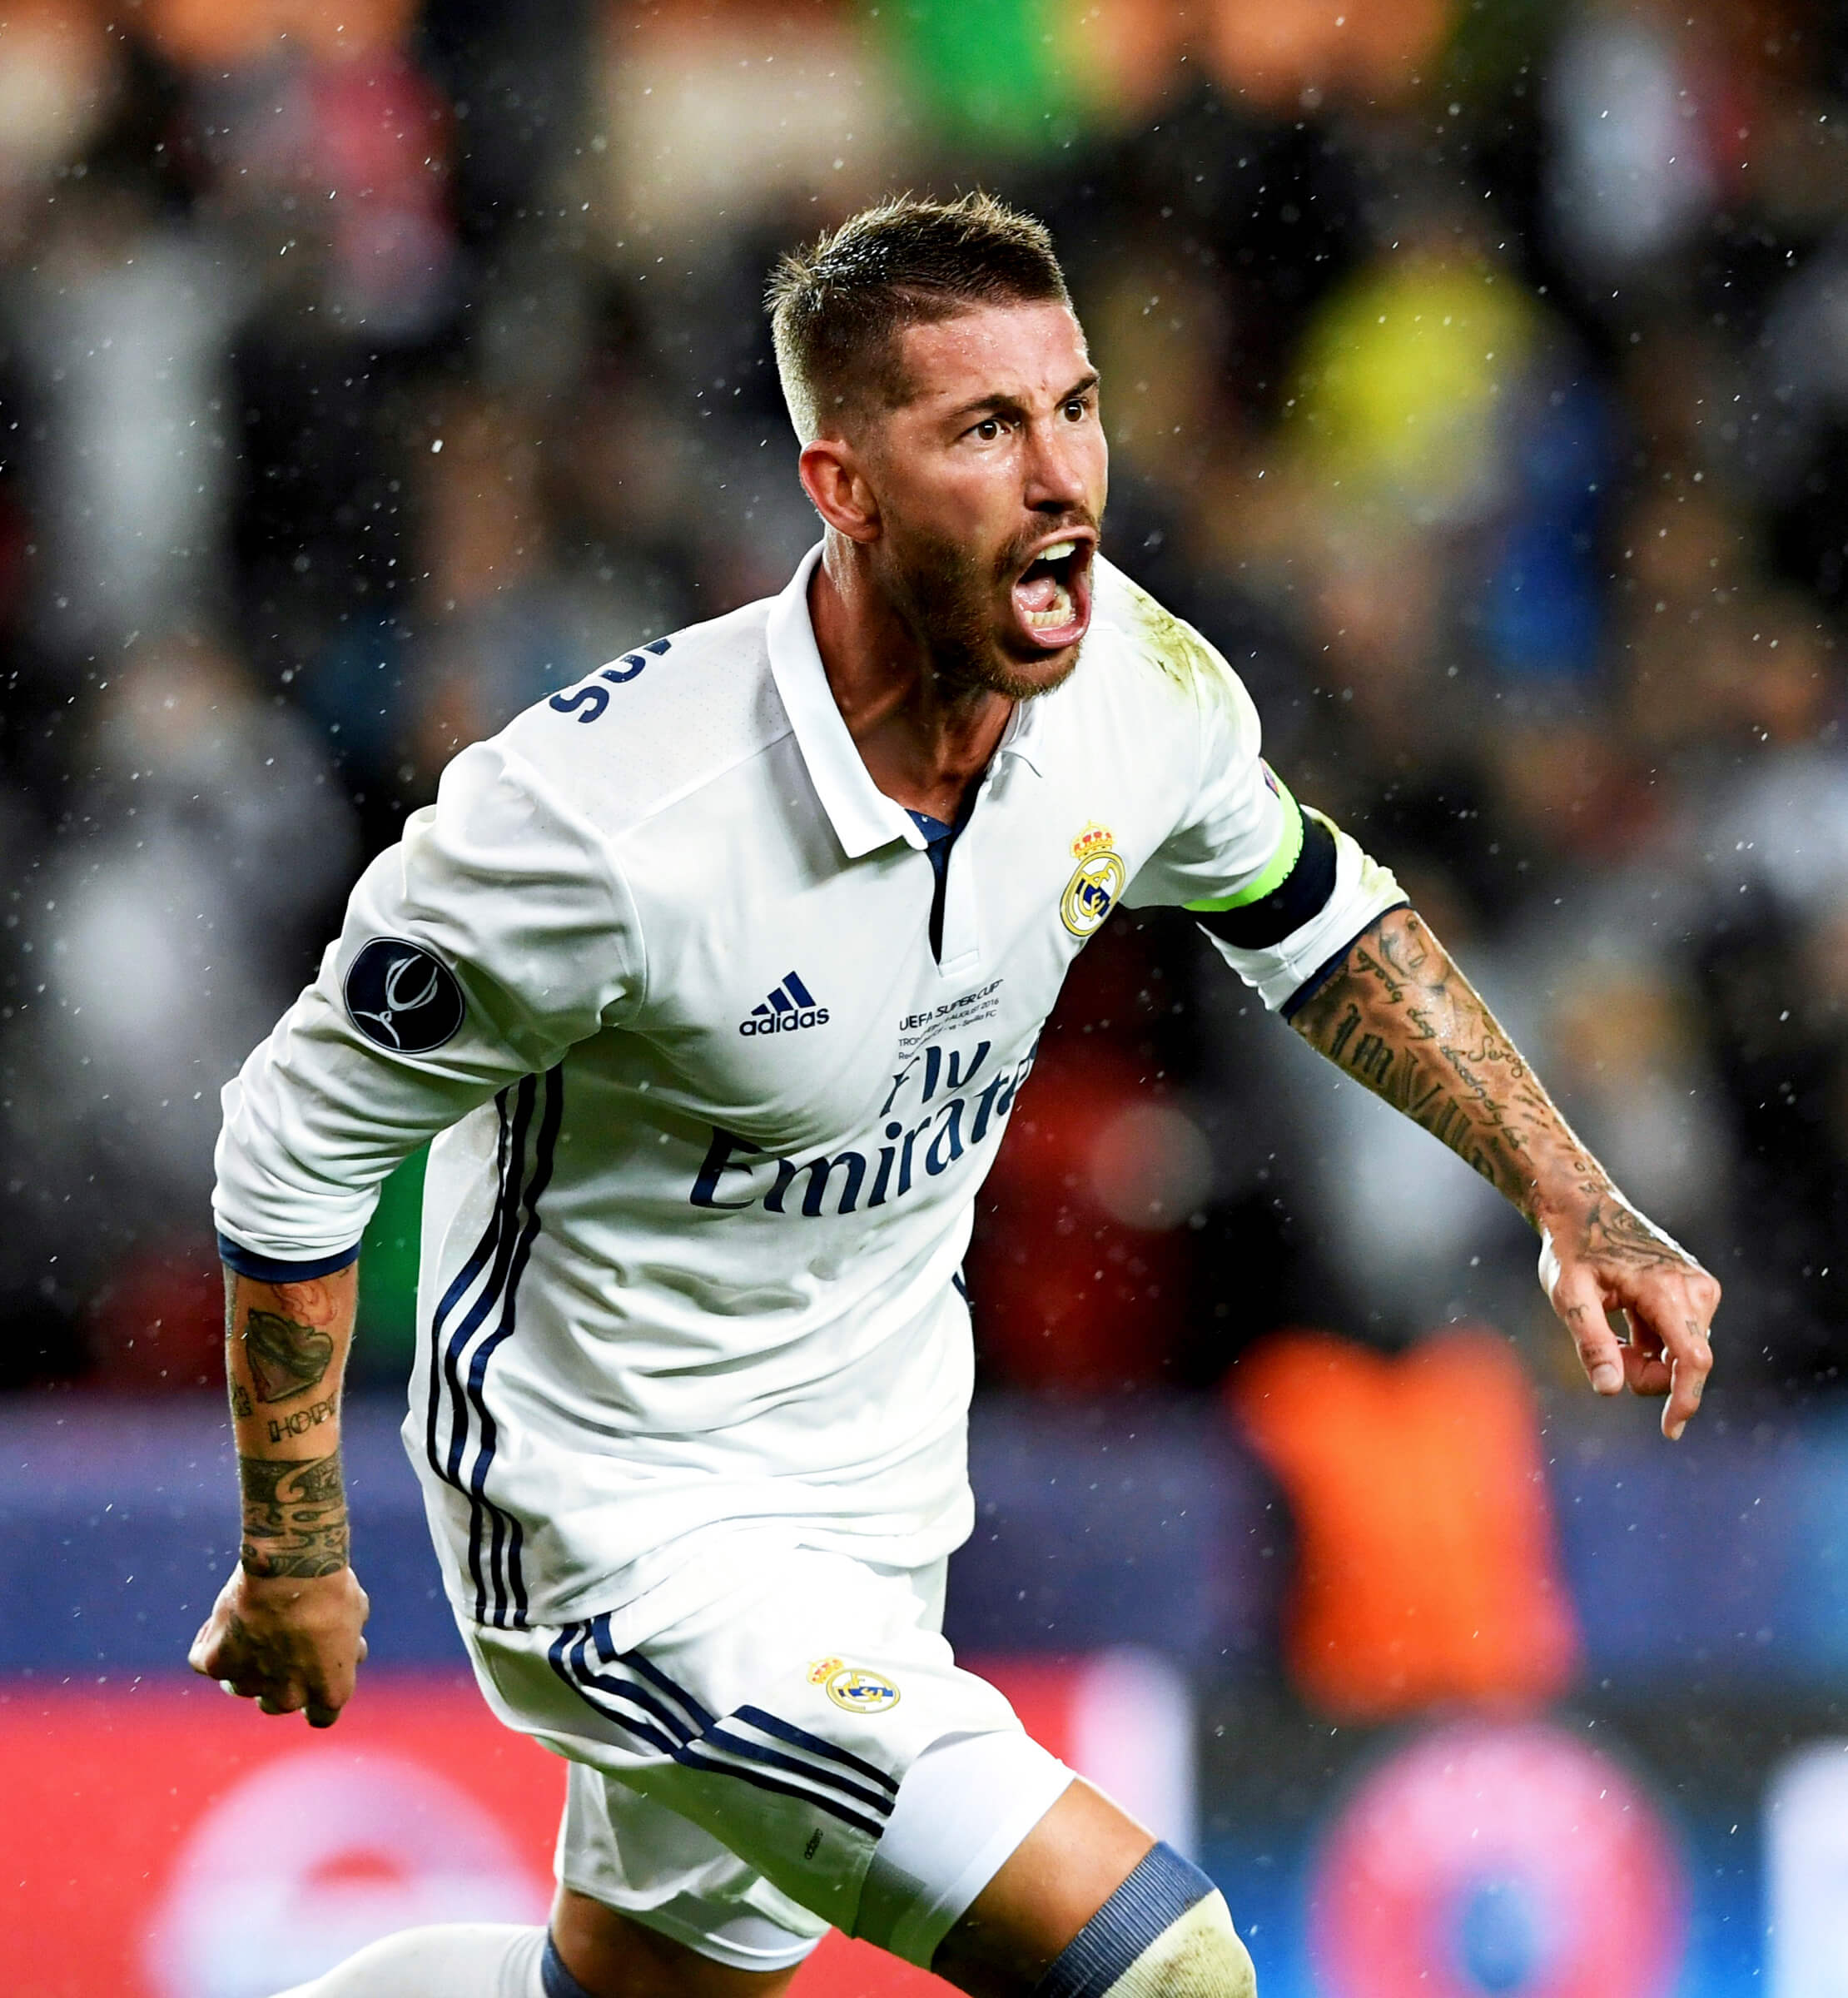 Real Madrid footballer Sergio Ramos wearing a white football shirt and captain's armband, celebrating after scoring a goal